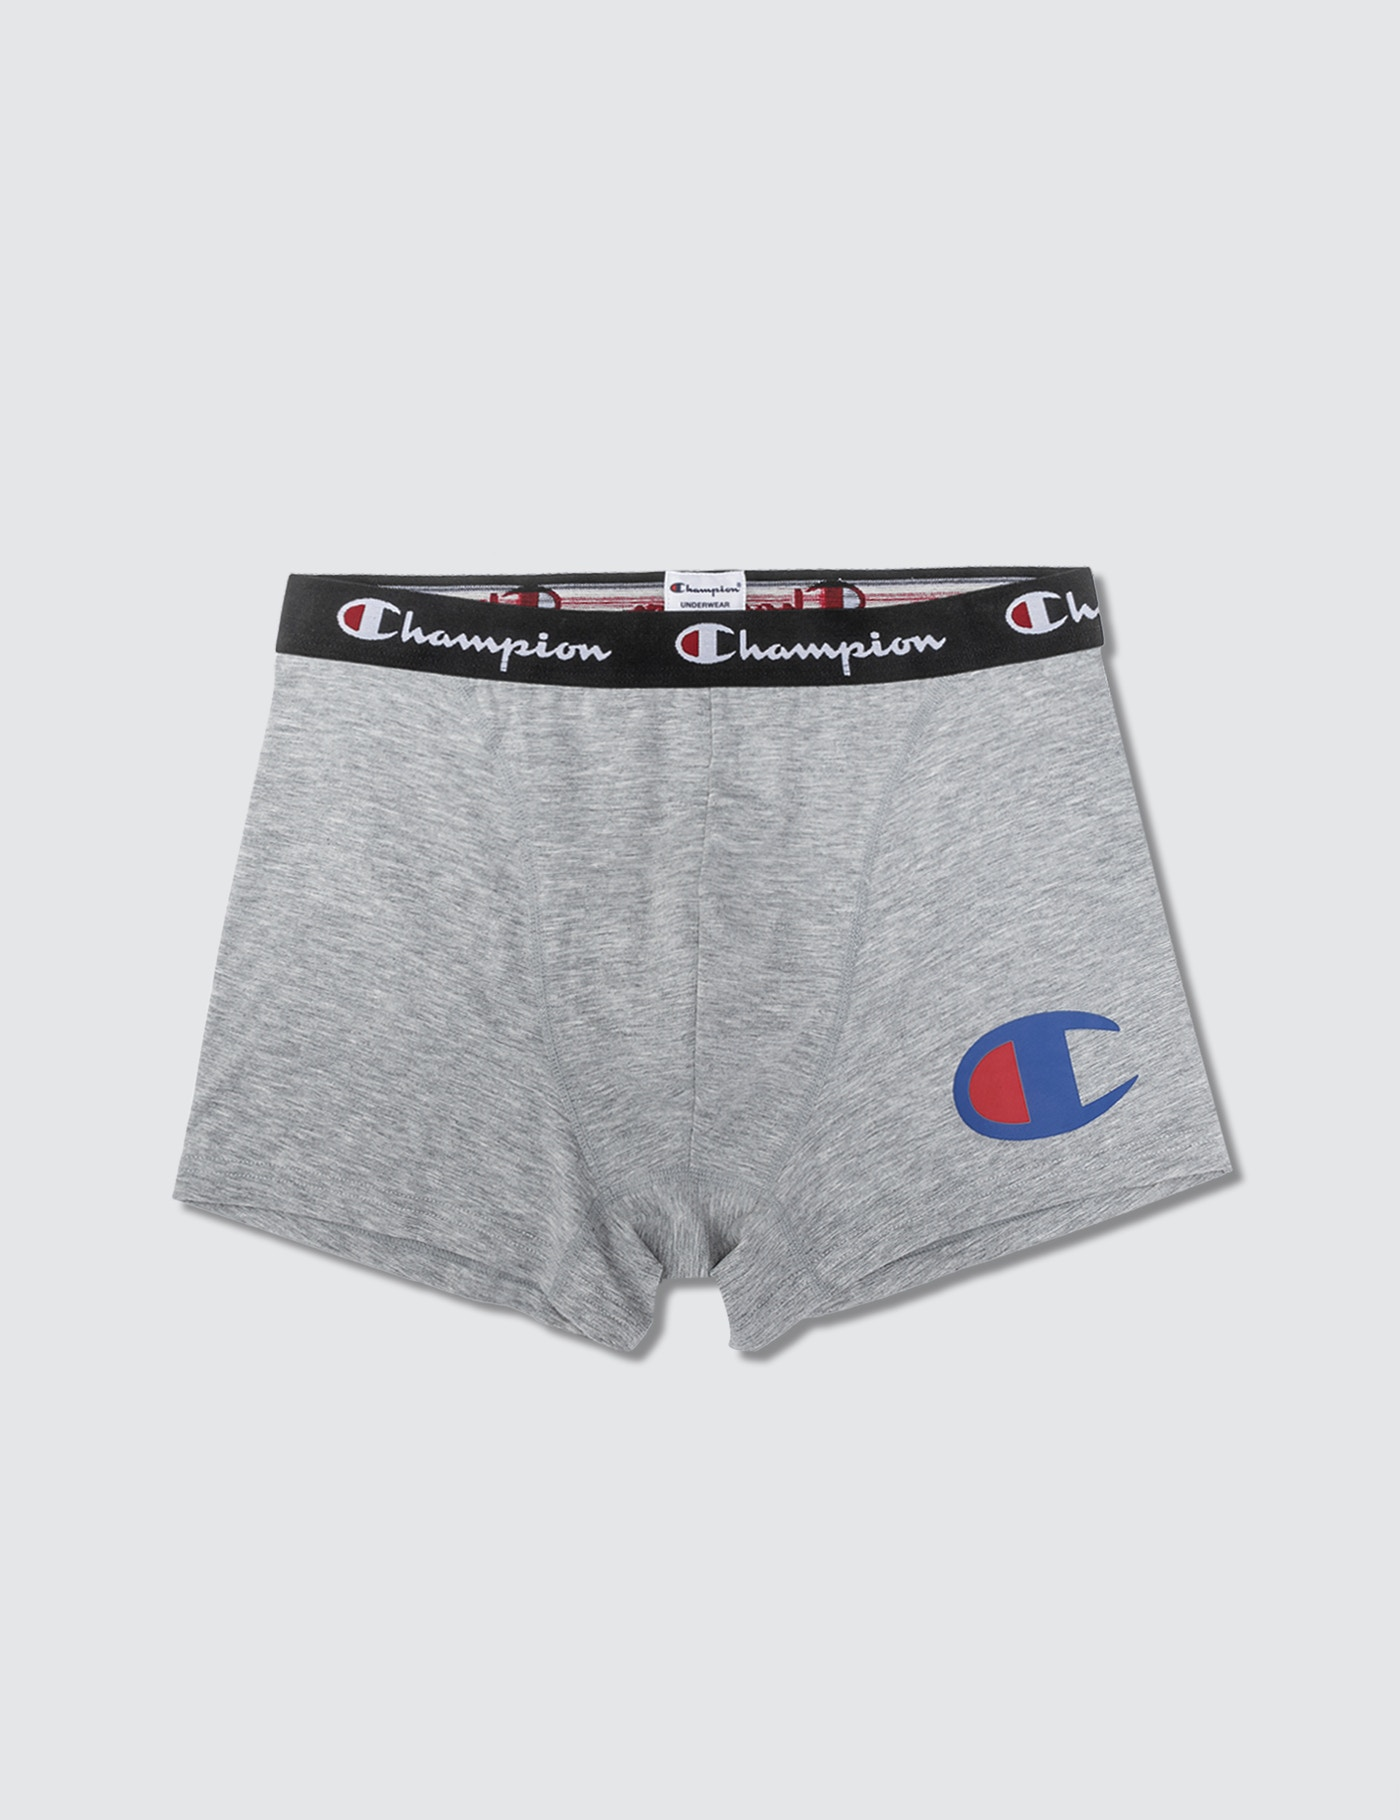 84537103 Buy Original Champion JP Big C Logo Briff Shorts at Indonesia | BOBOBOBO